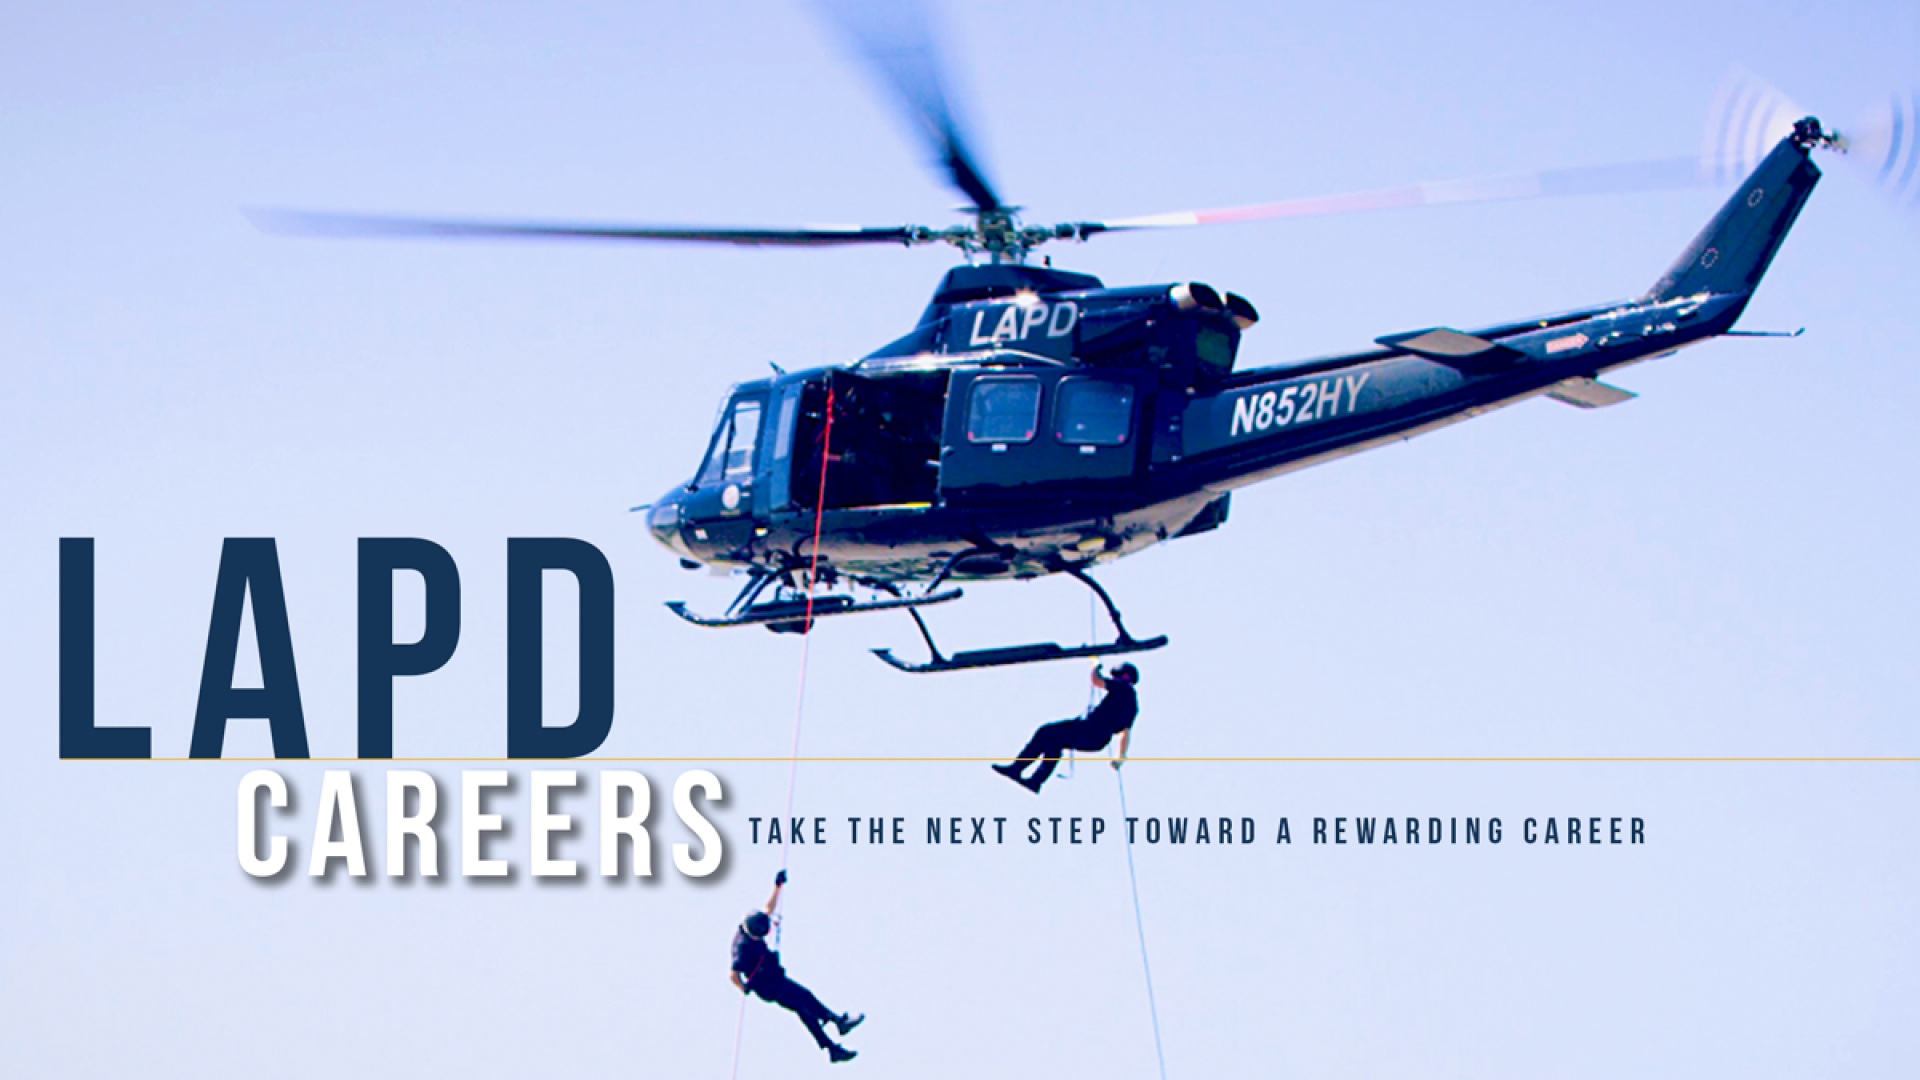 CAREER LADDERS | Join LAPD